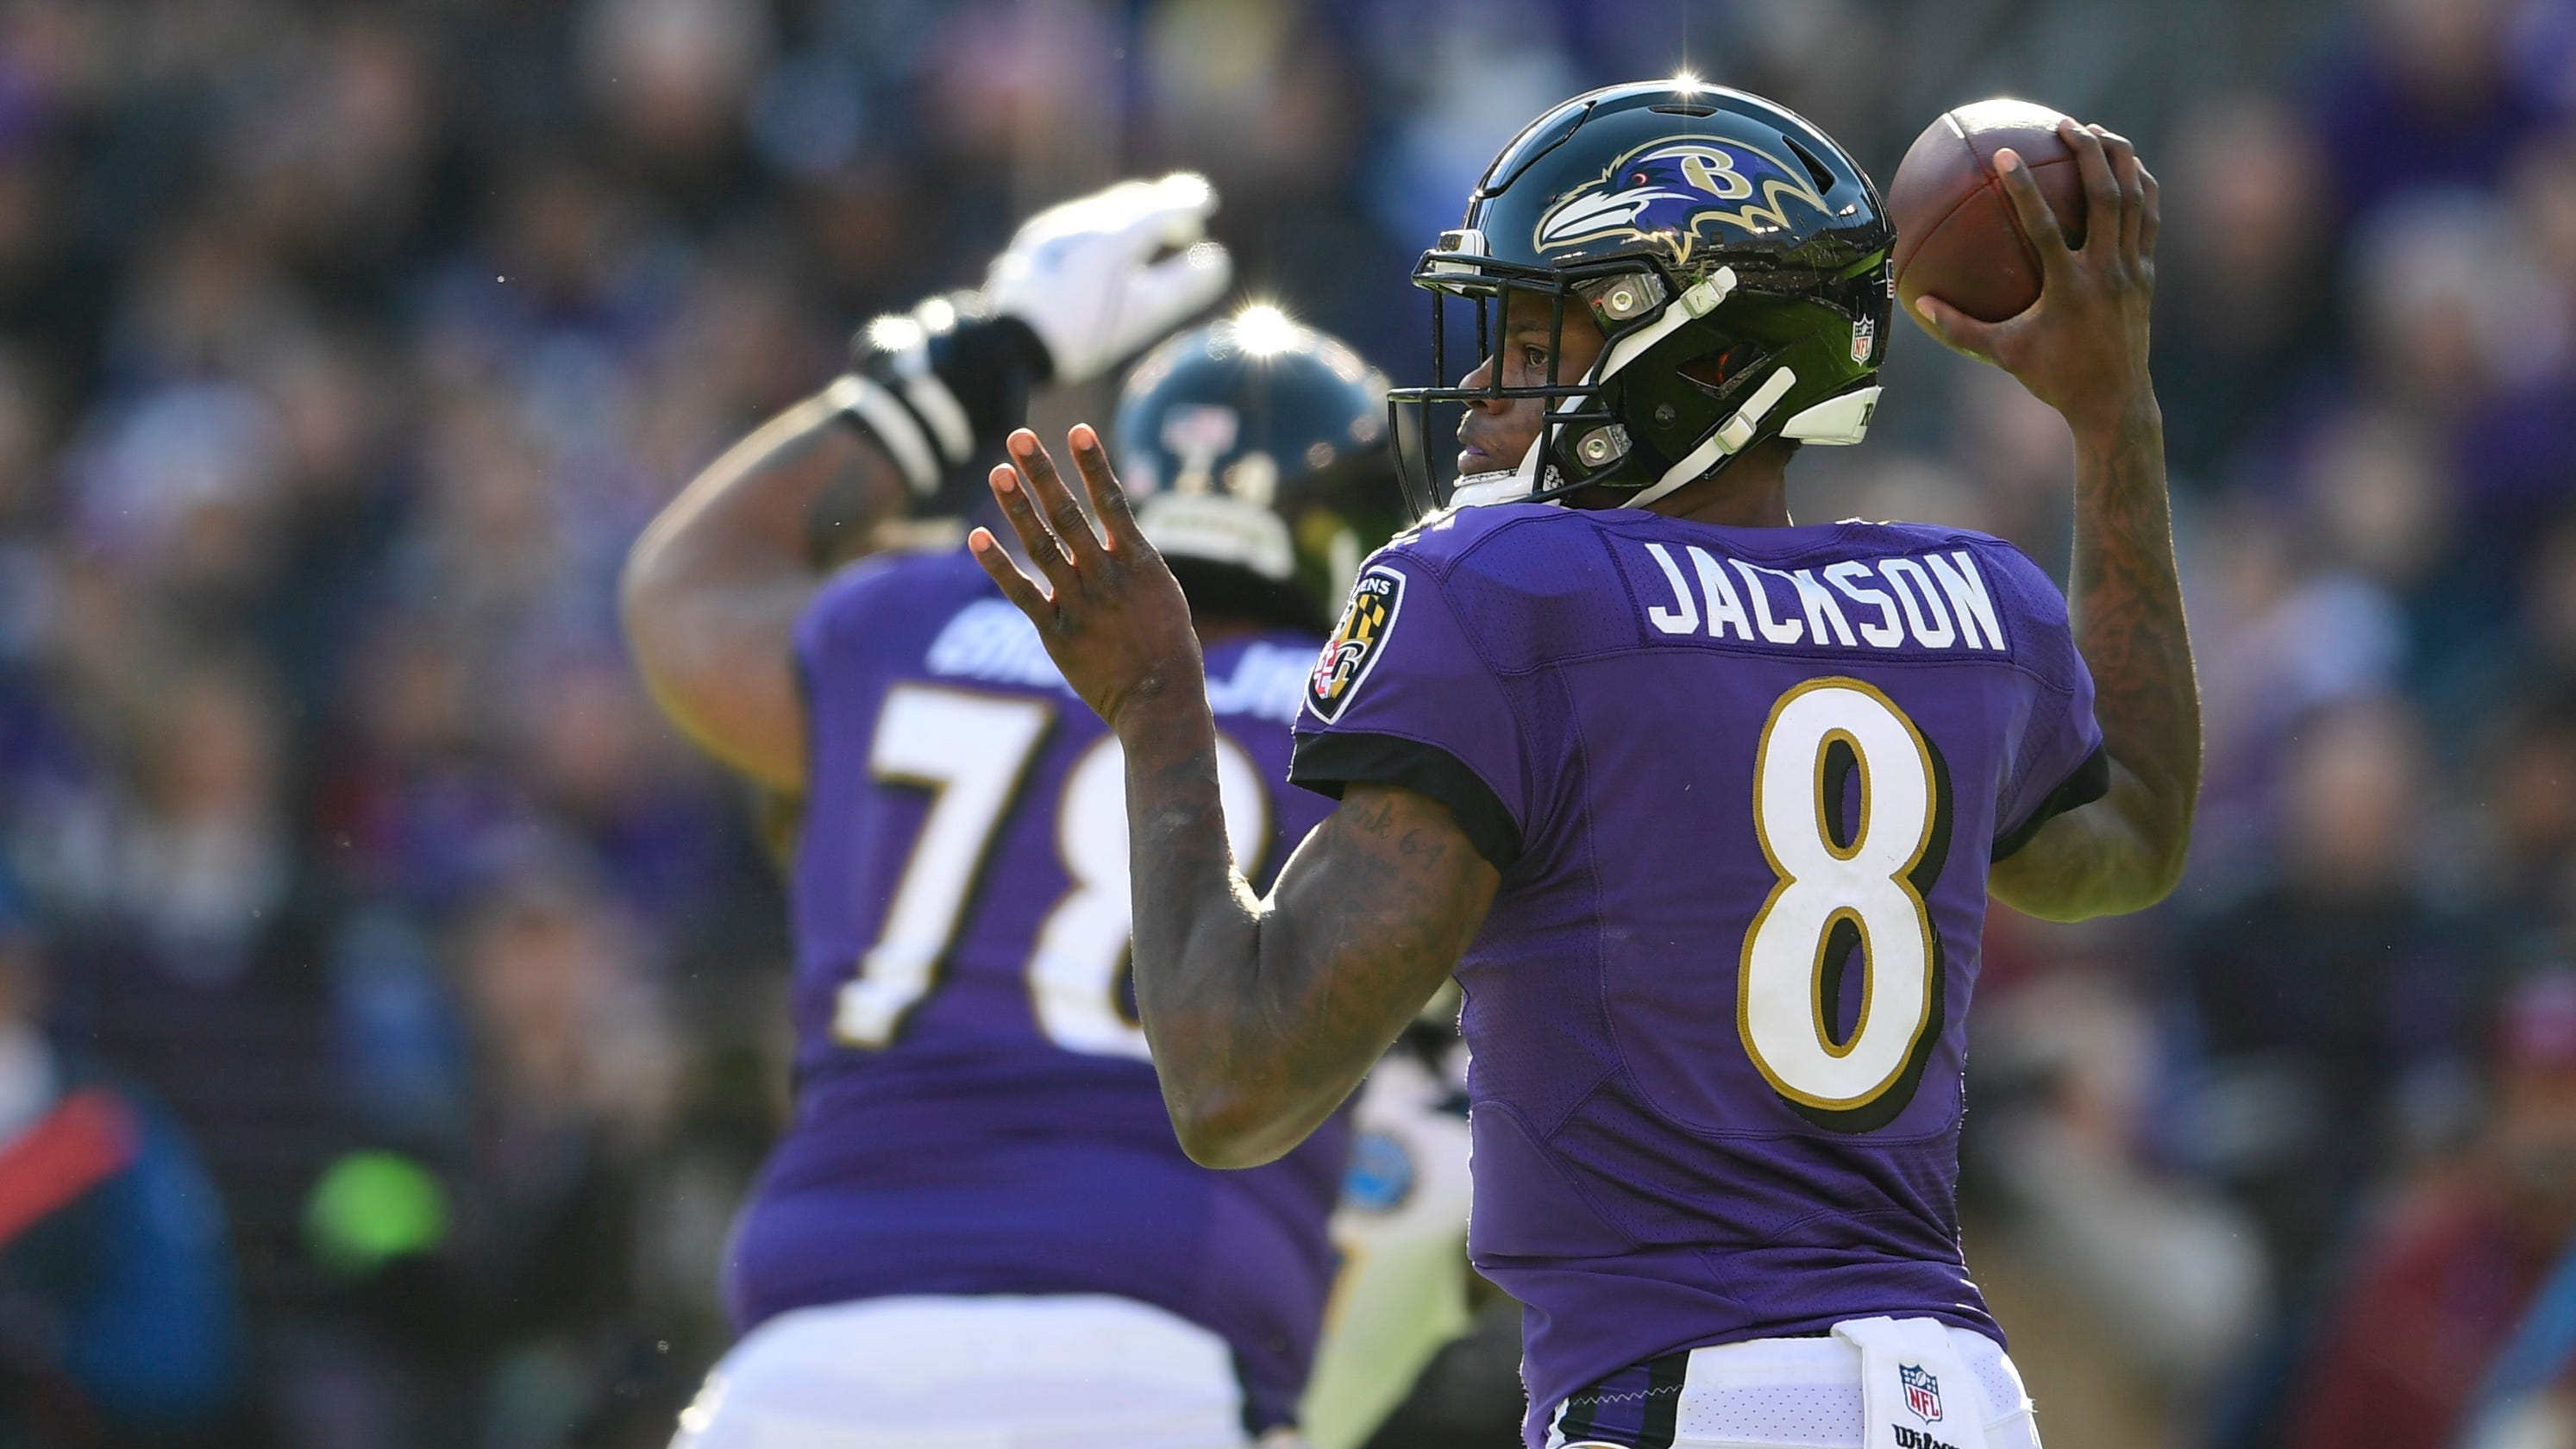 Lamar Jackson s rookie season over with 23-17 playoff loss to Chargers 1f7838e31